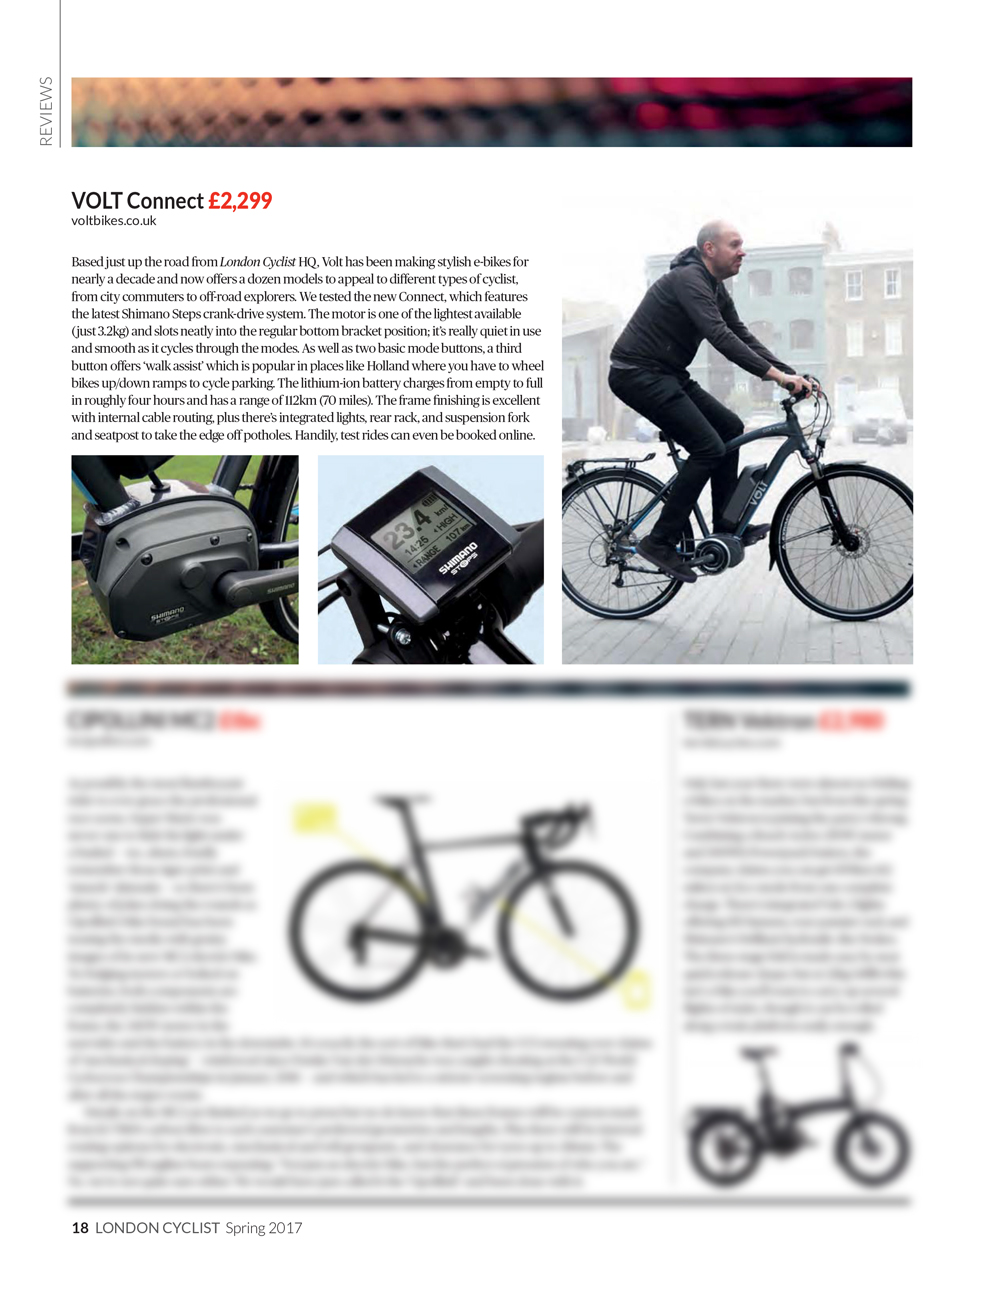 Review of VOLT Connect in London Cycling Campaign's Spring Publication